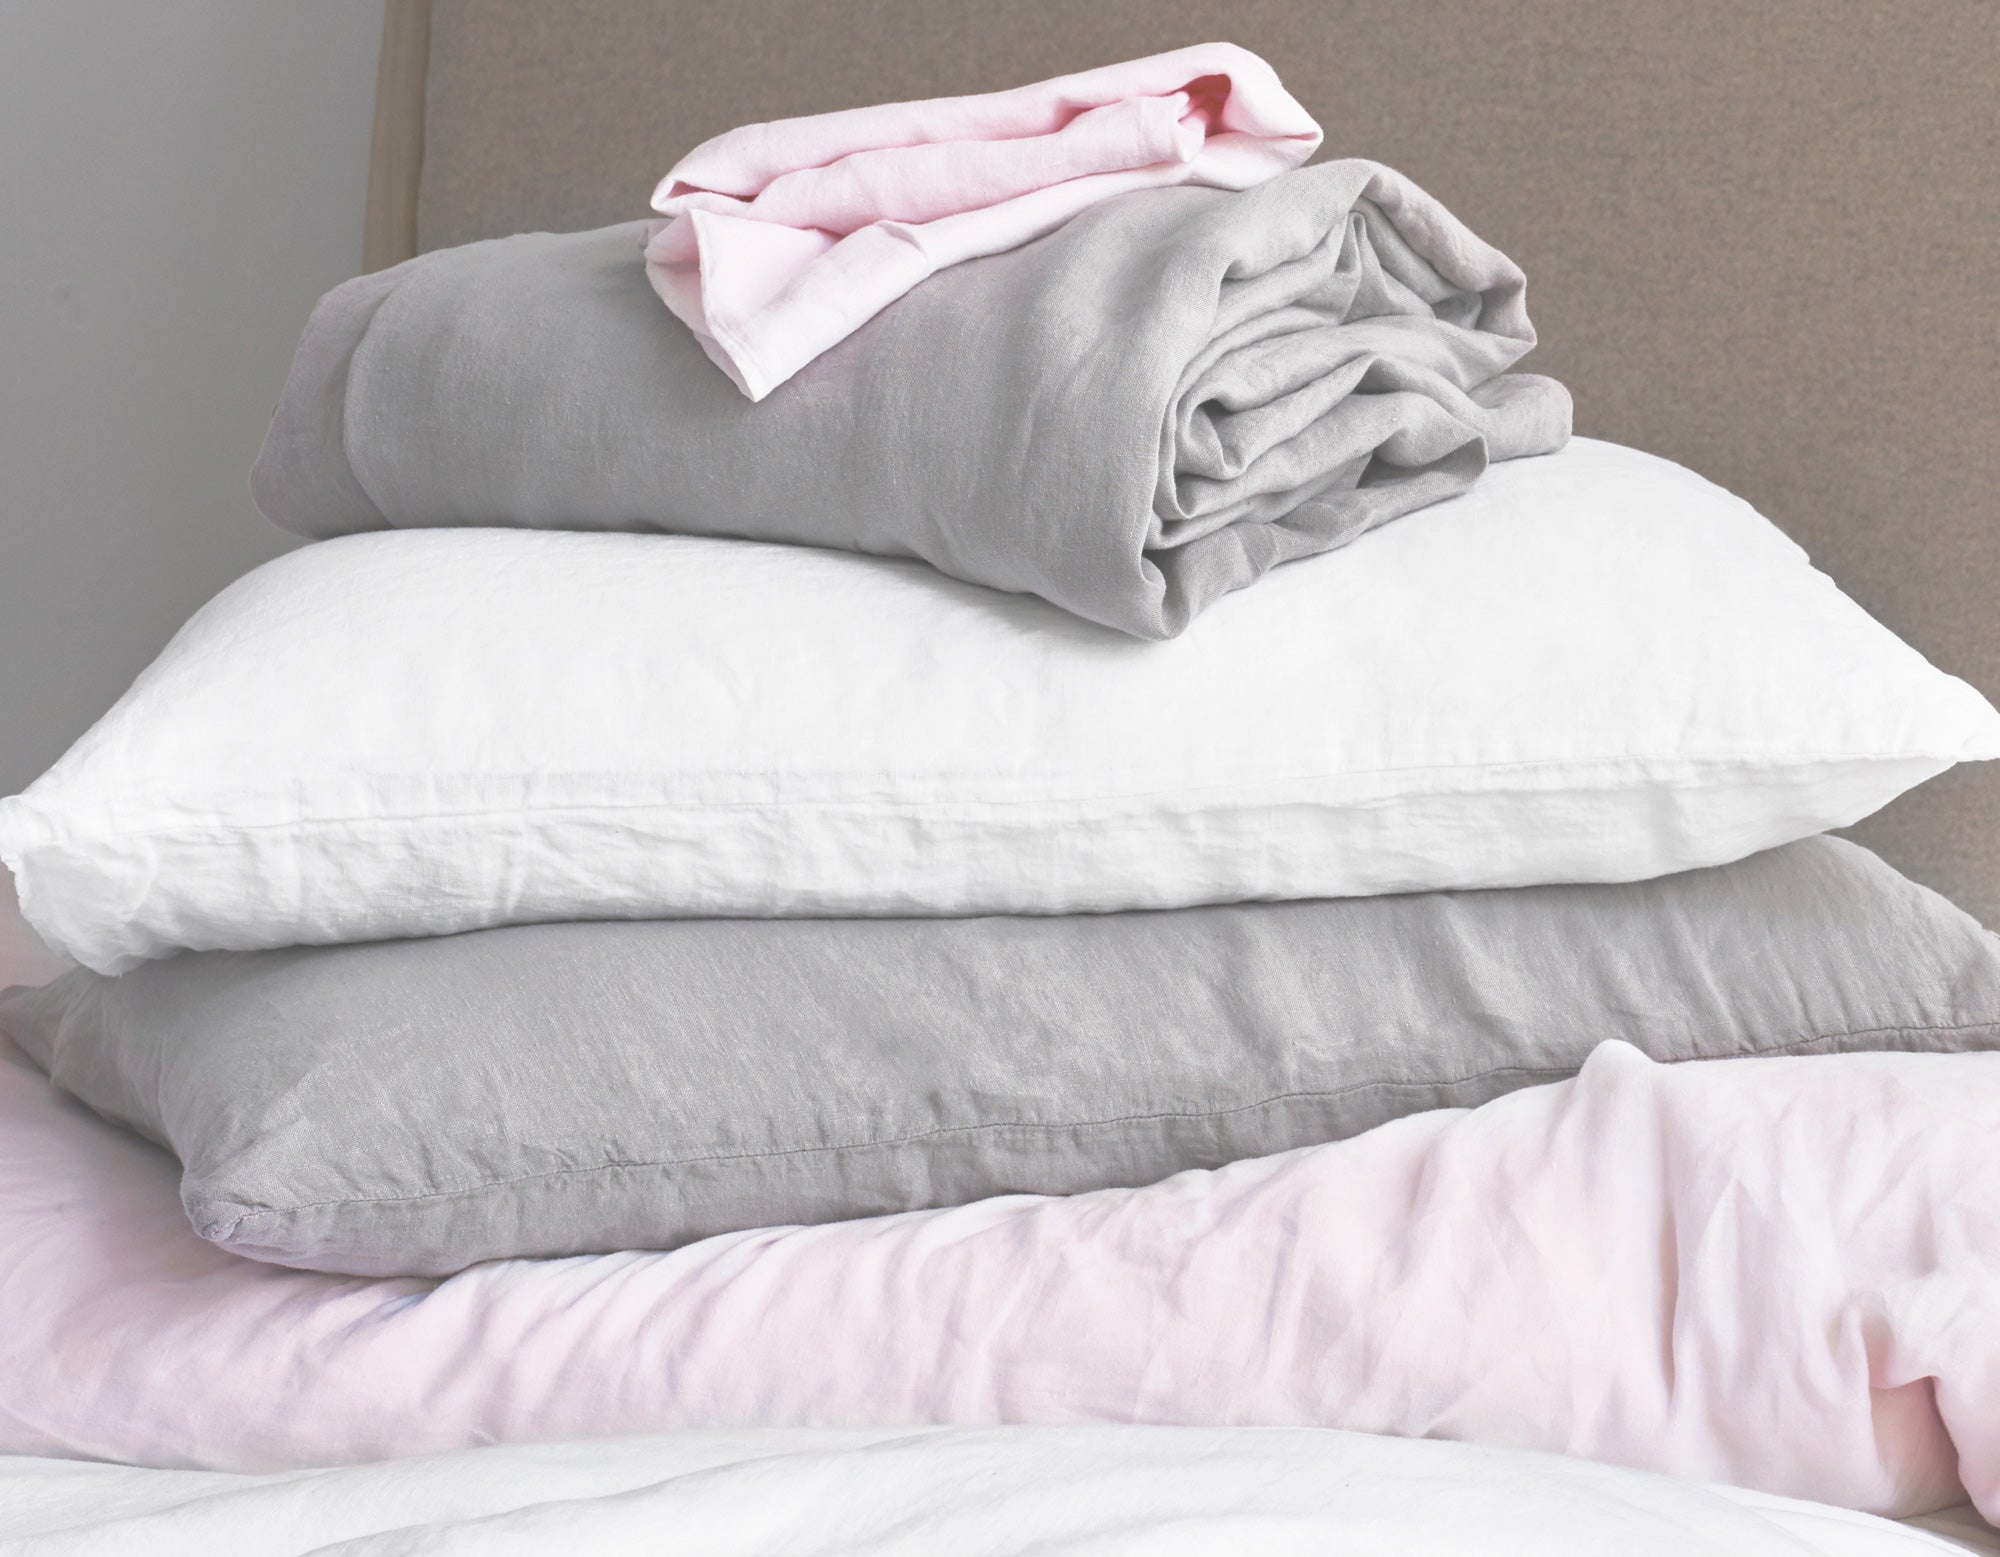 Linen Bedding in Grey, Pink, White | scooms